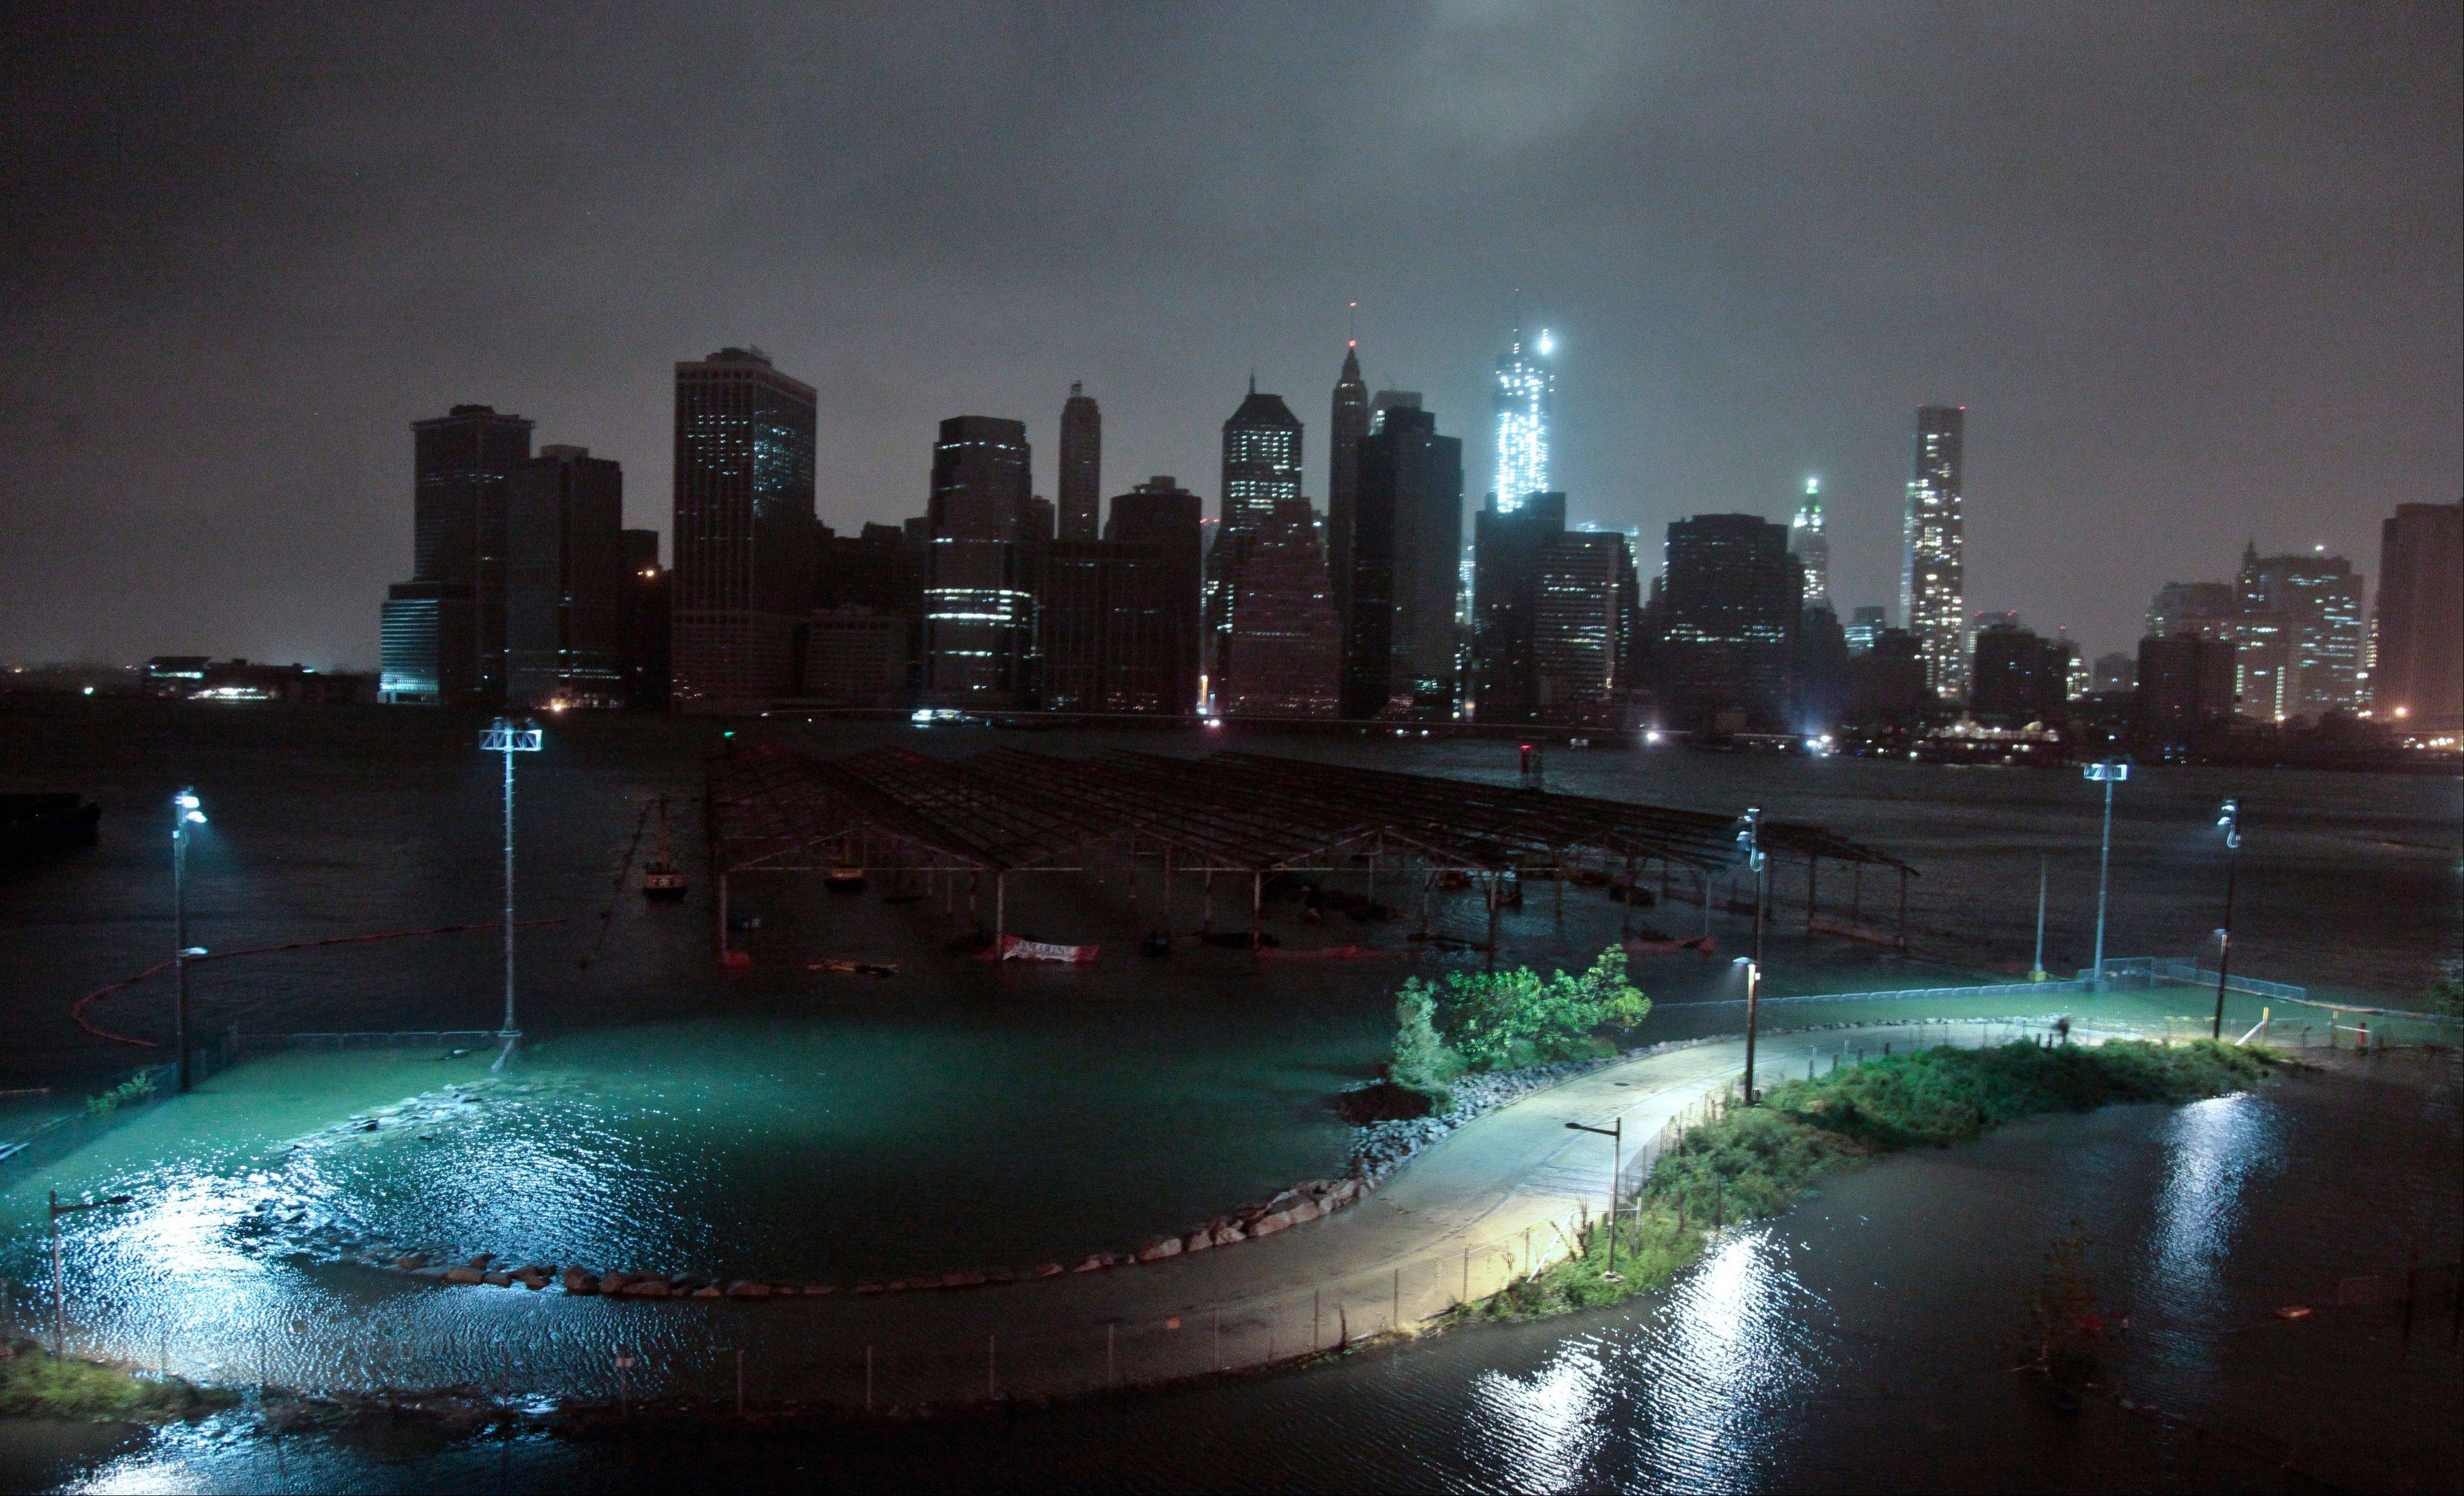 Lower Manhattan went dark on Monday after Hurricane Sandy forced the shutdown of mass transit, schools and financial markets and left millions without electricity.